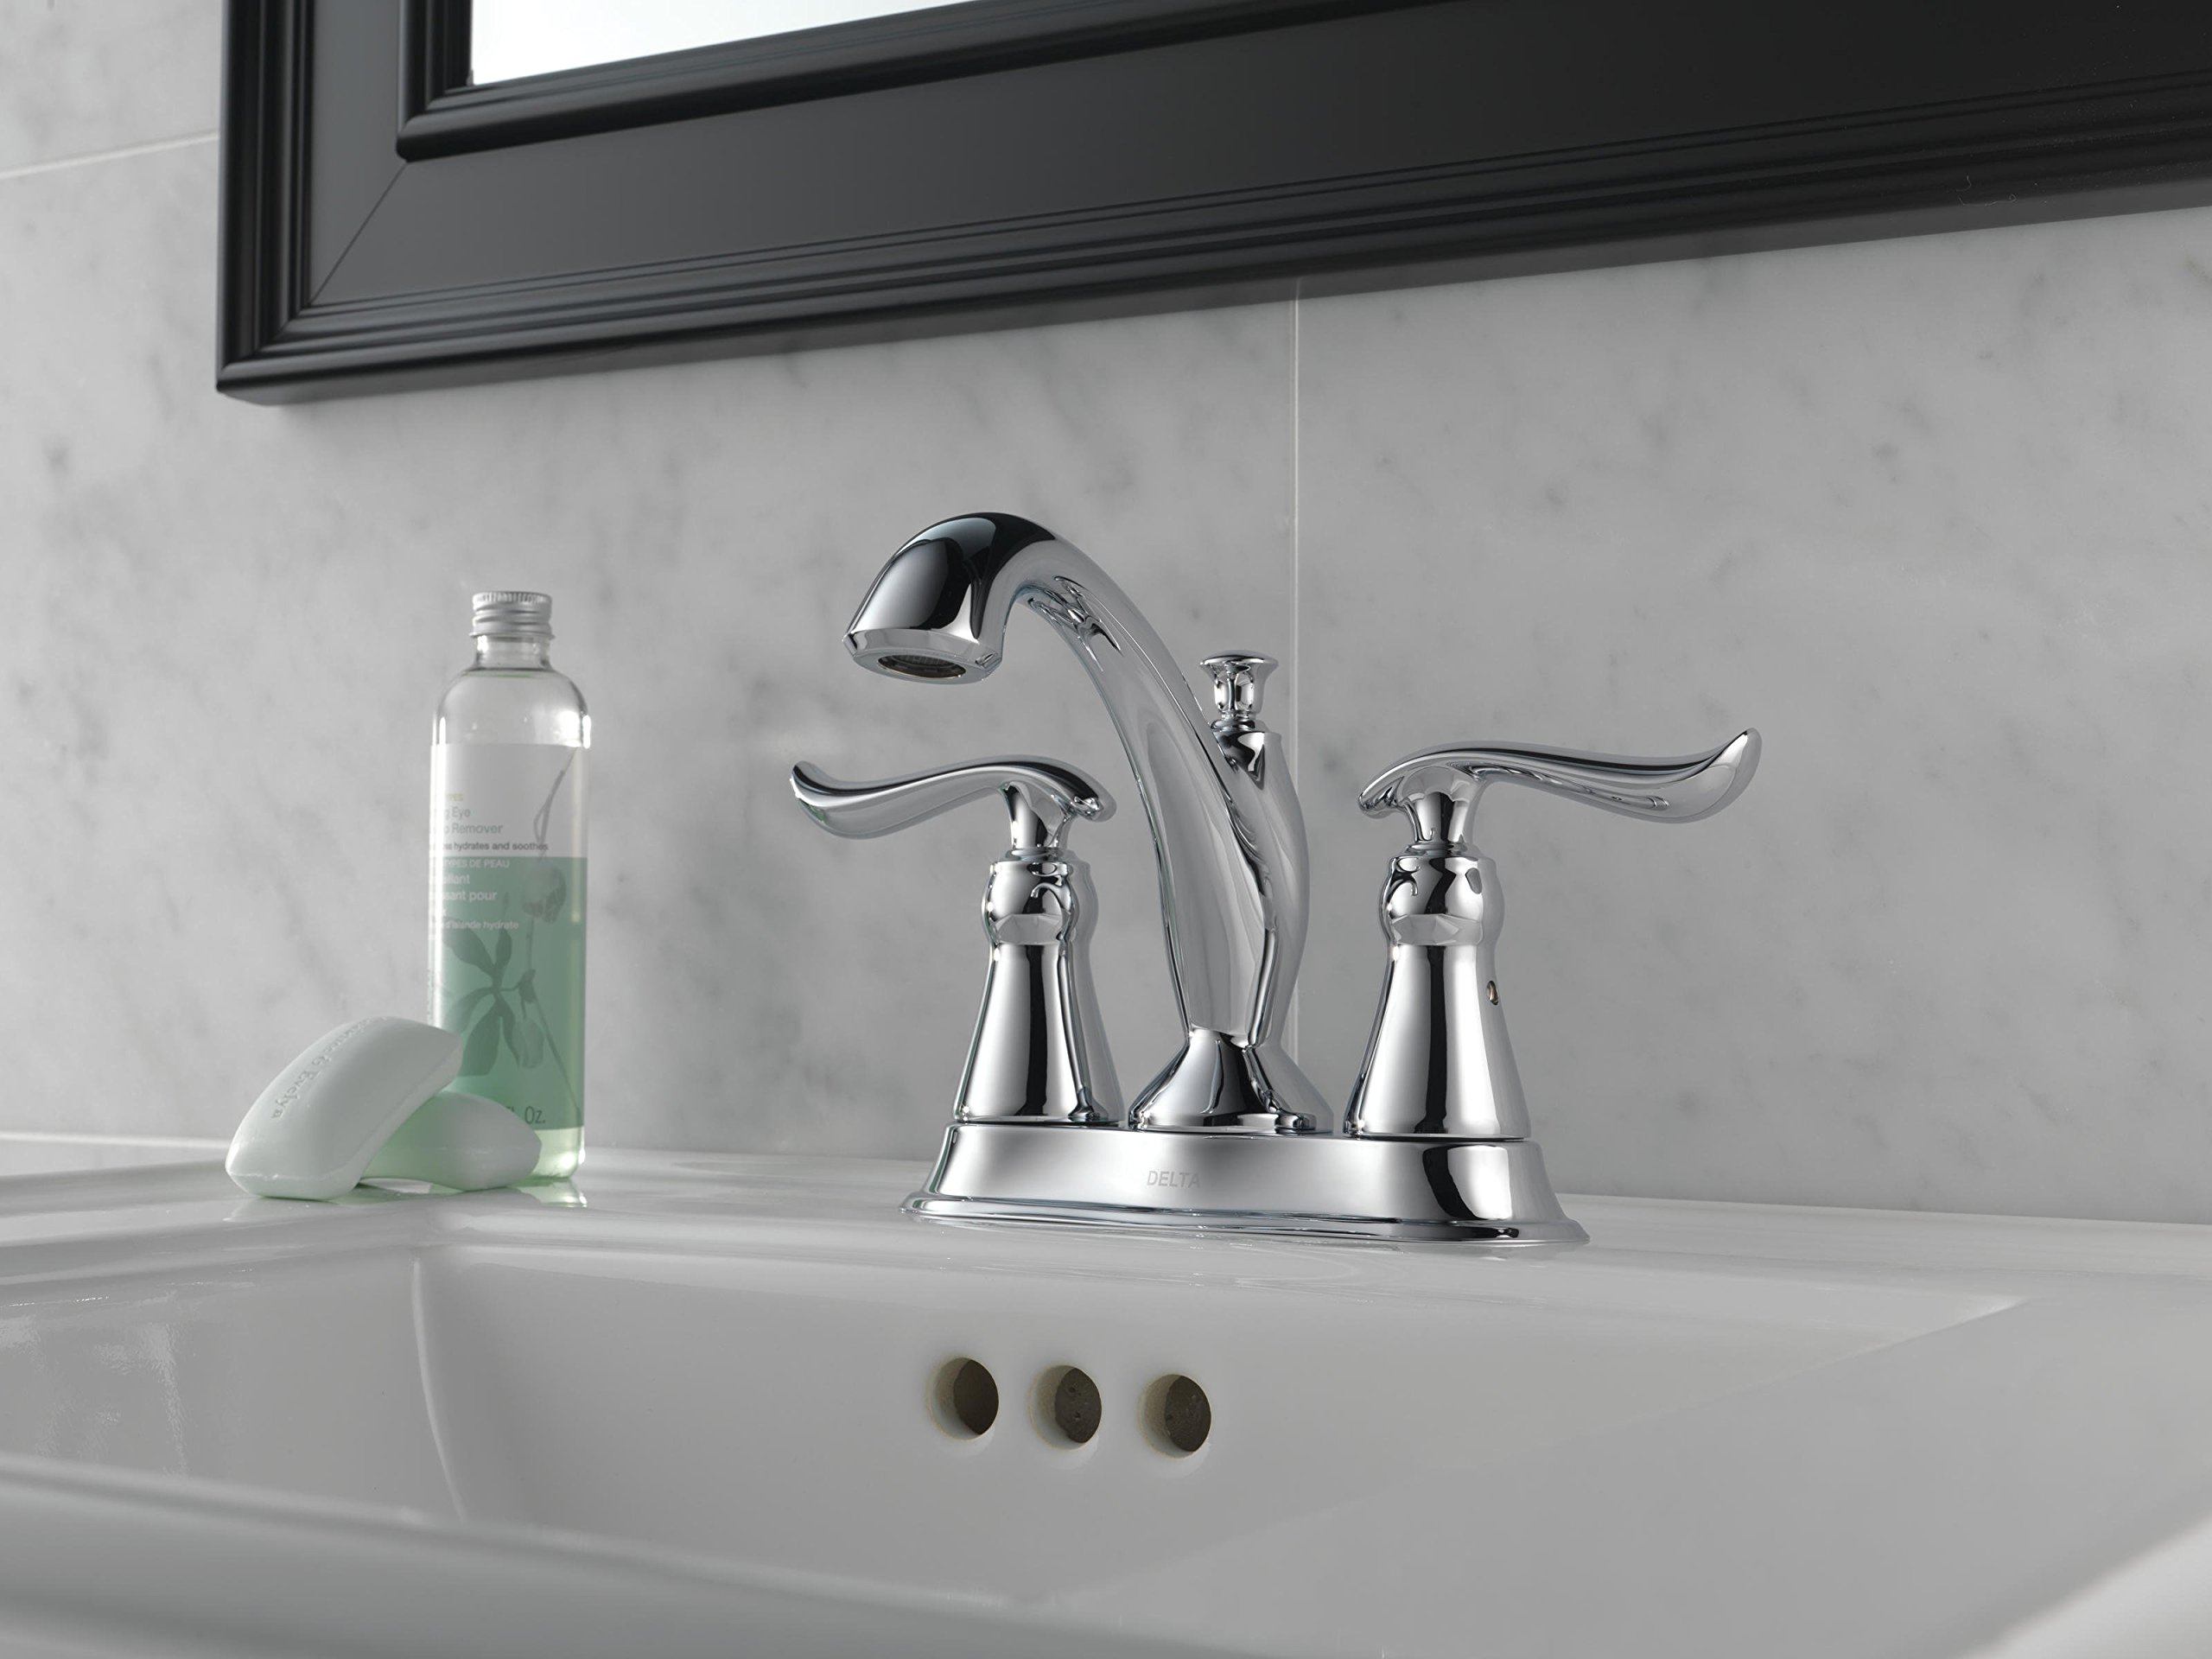 Delta Linden 2-Handle Centerset Bathroom Faucet with Diamond Seal Technology and Metal Drain Assembly, Chrome 2594-MPU-DST by DELTA FAUCET (Image #5)